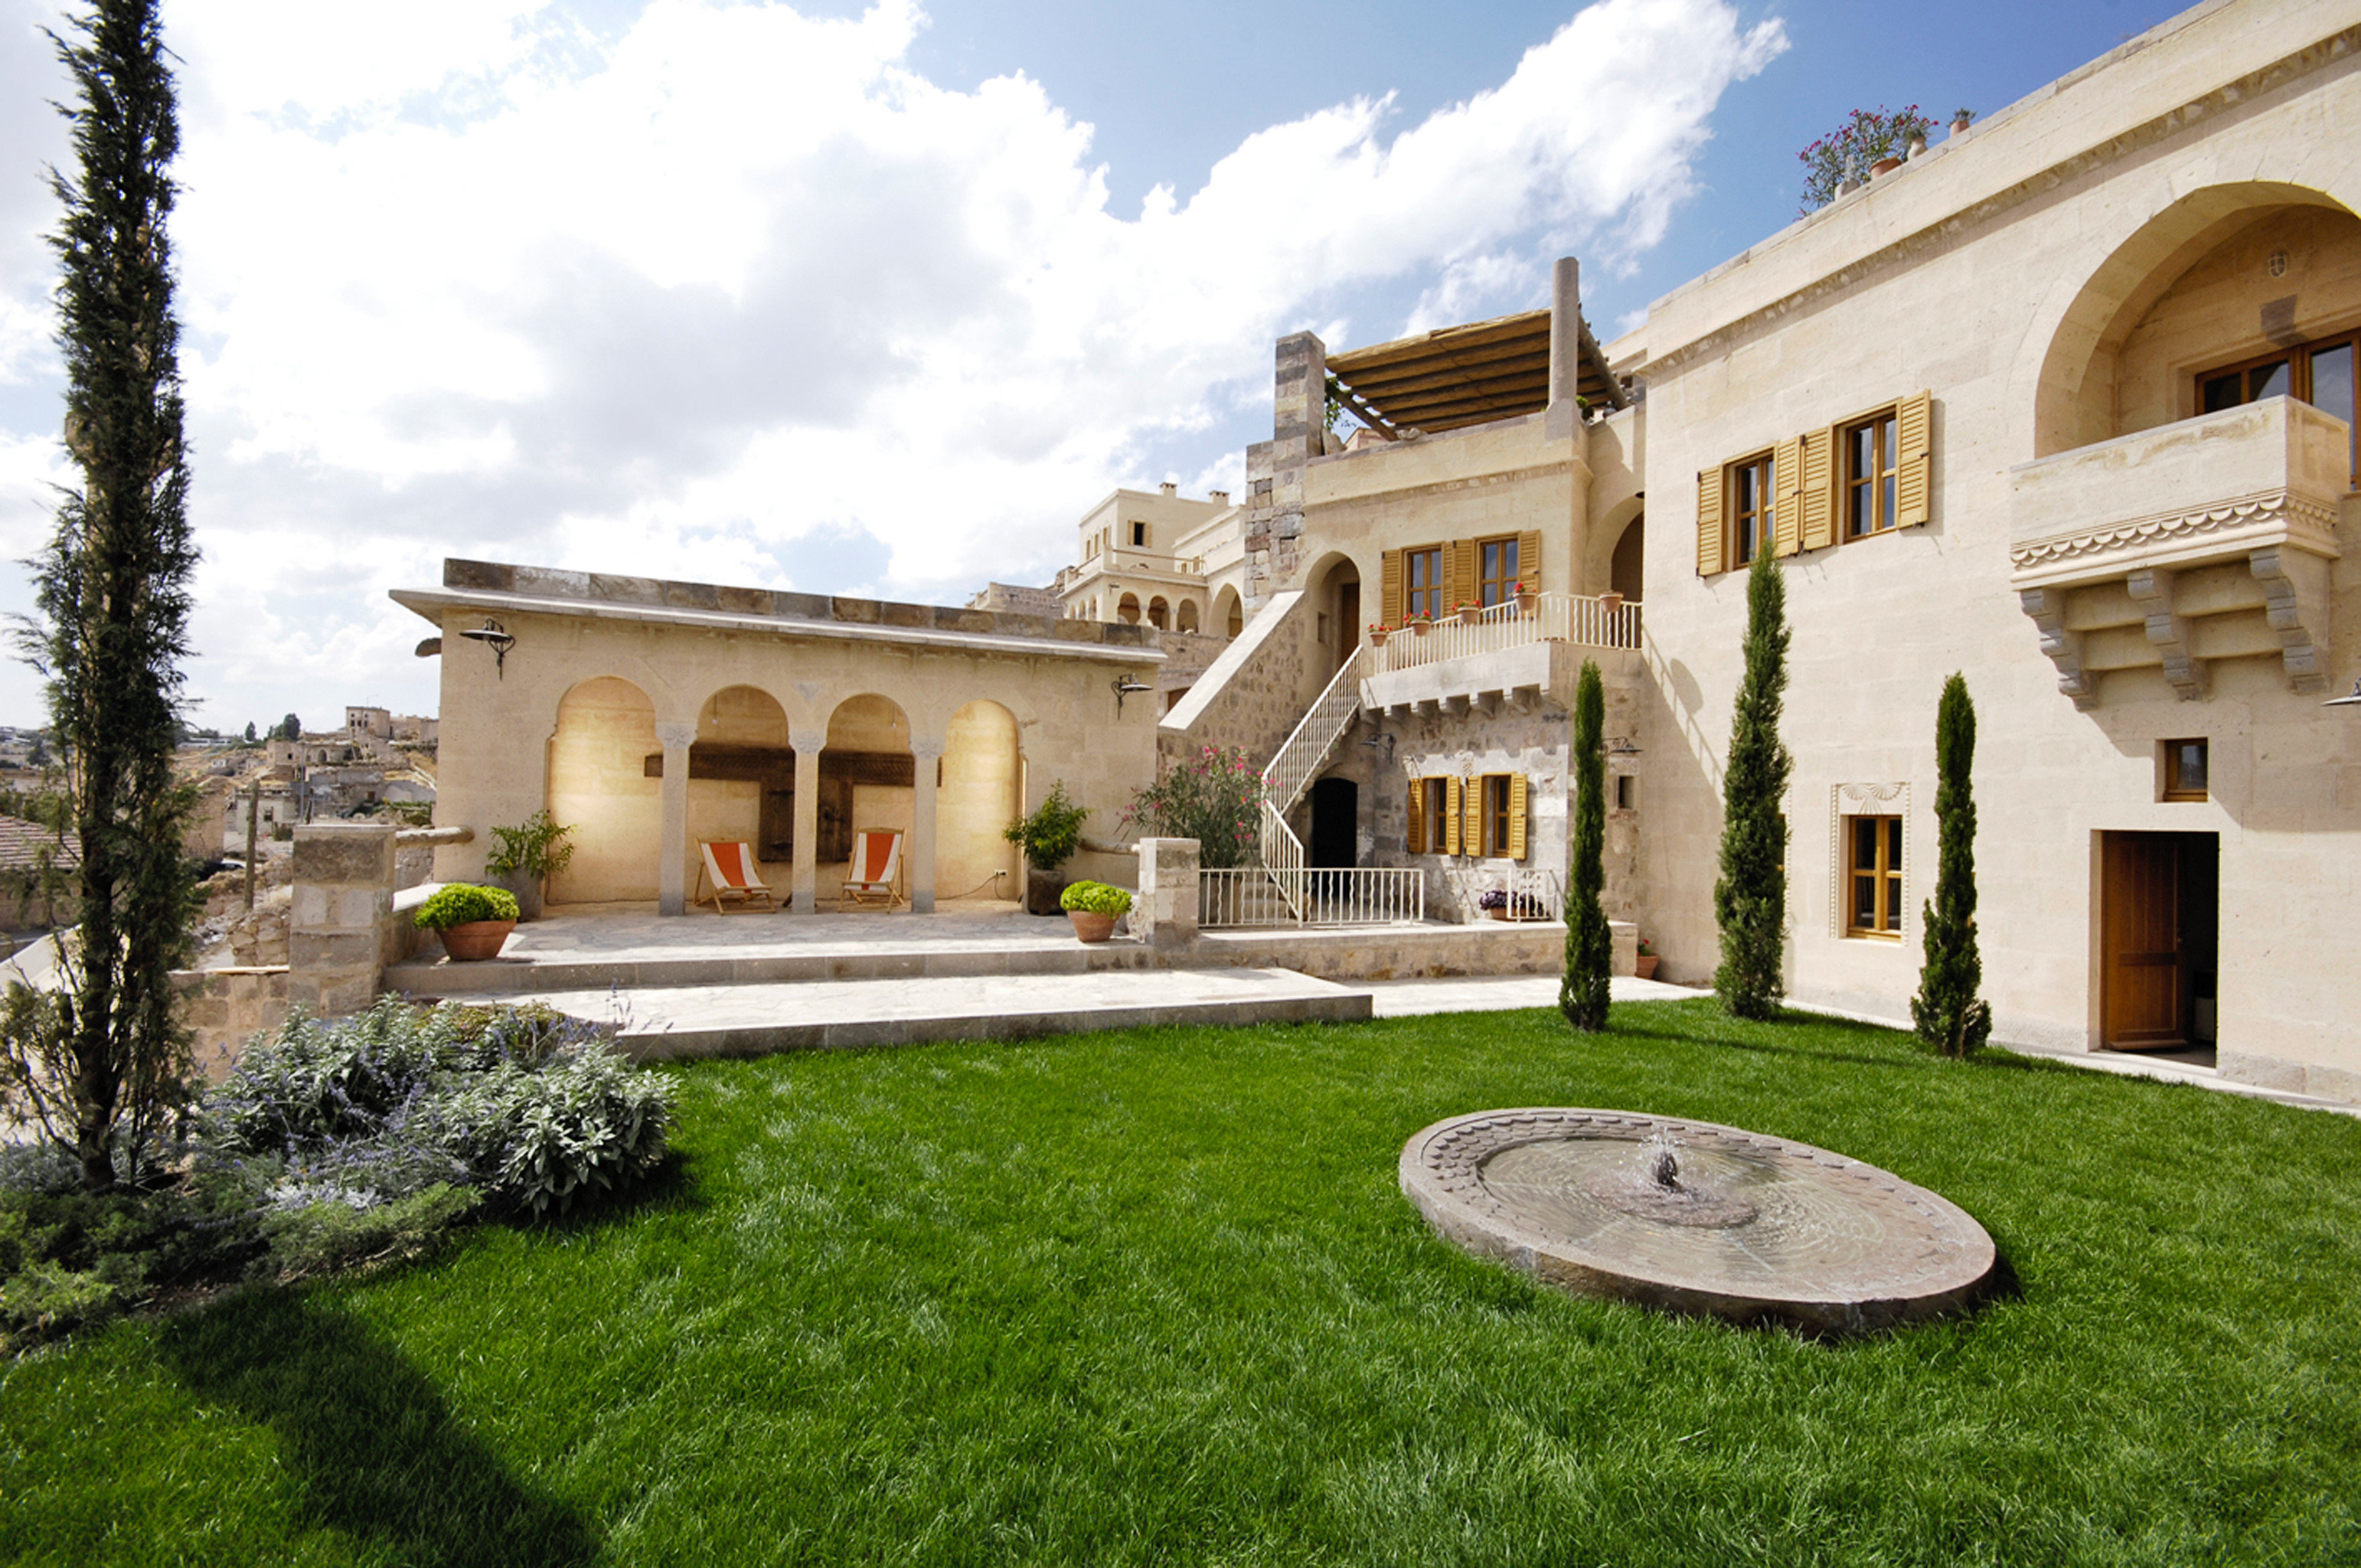 Architecture Eco Grounds Luxury Resort grass sky property building home house mansion Villa Courtyard hacienda manor house lawn palace stone colonnade